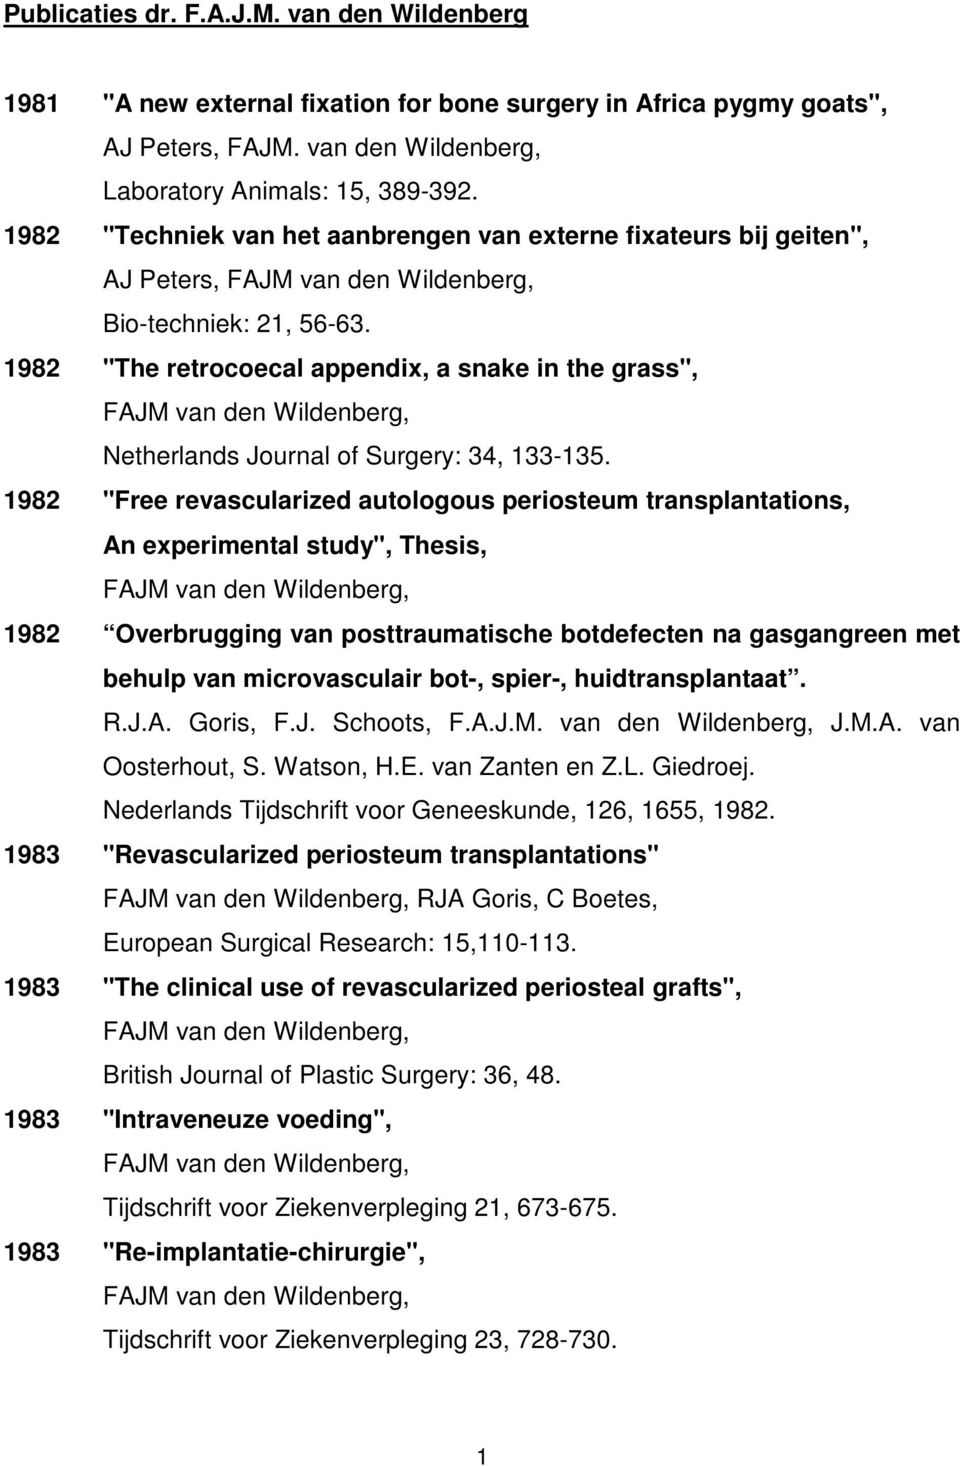 "1982 ""The retrocoecal appendix, a snake in the grass"", Netherlands Journal of Surgery: 34, 133-135."